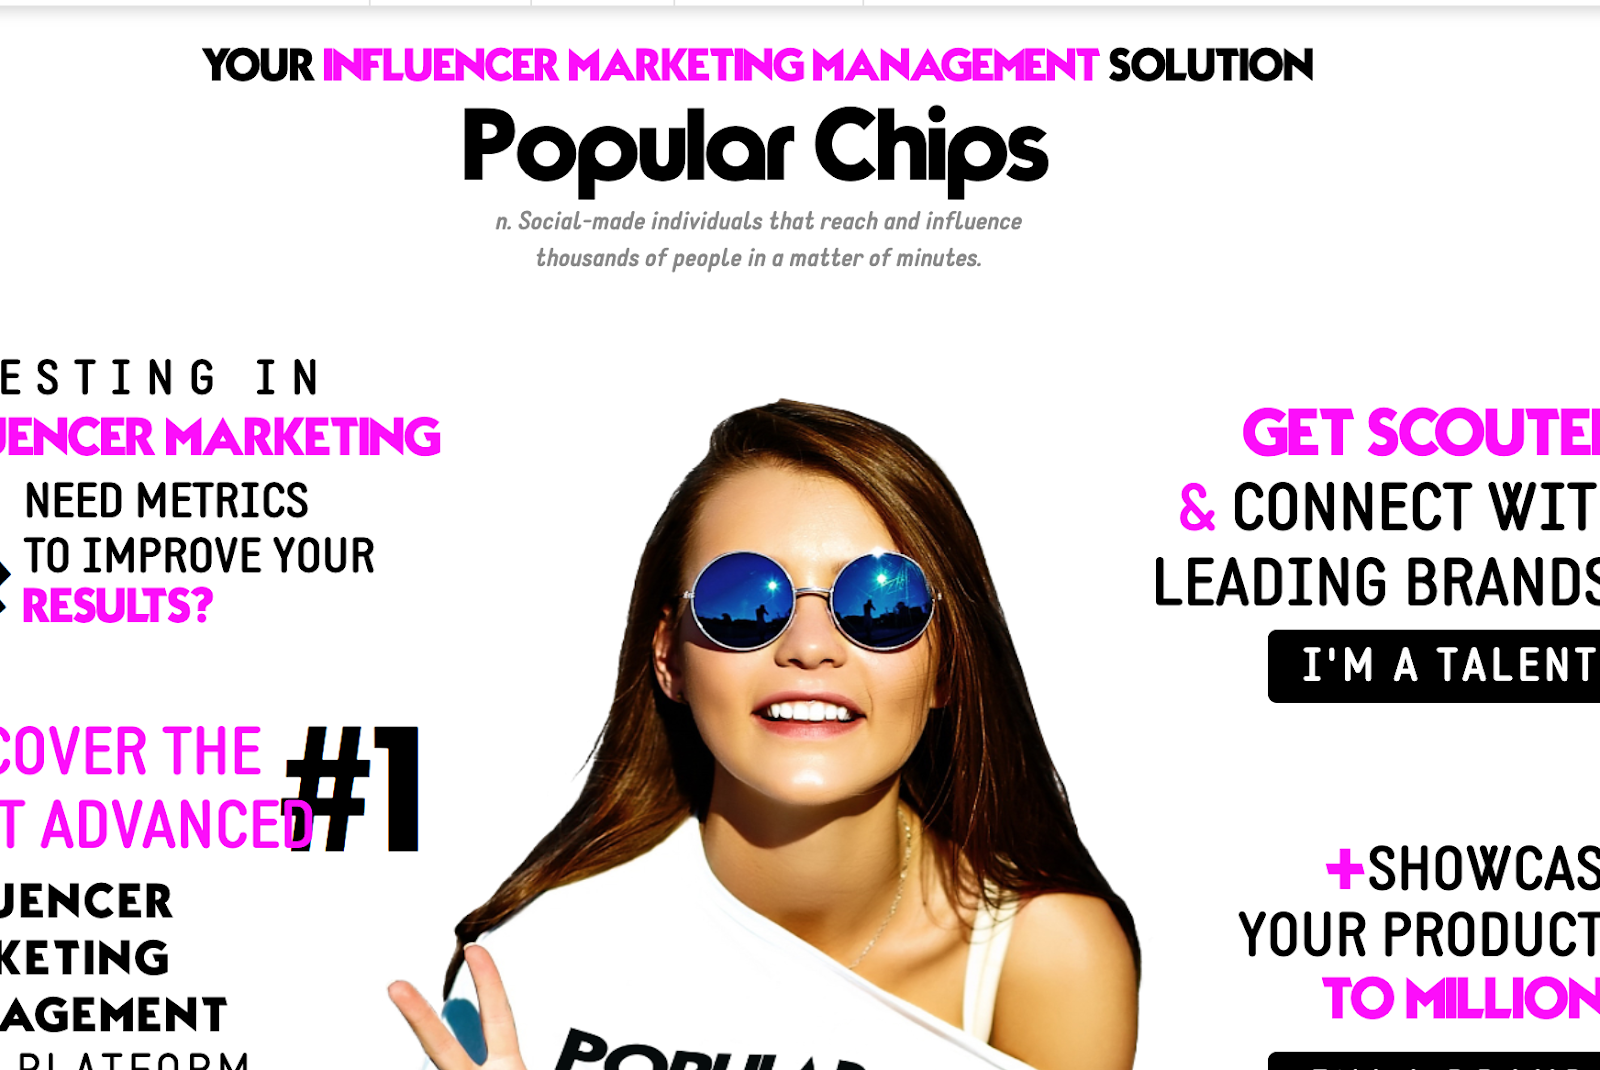 Popular Chips - Your Influencer Marketing Management Solution